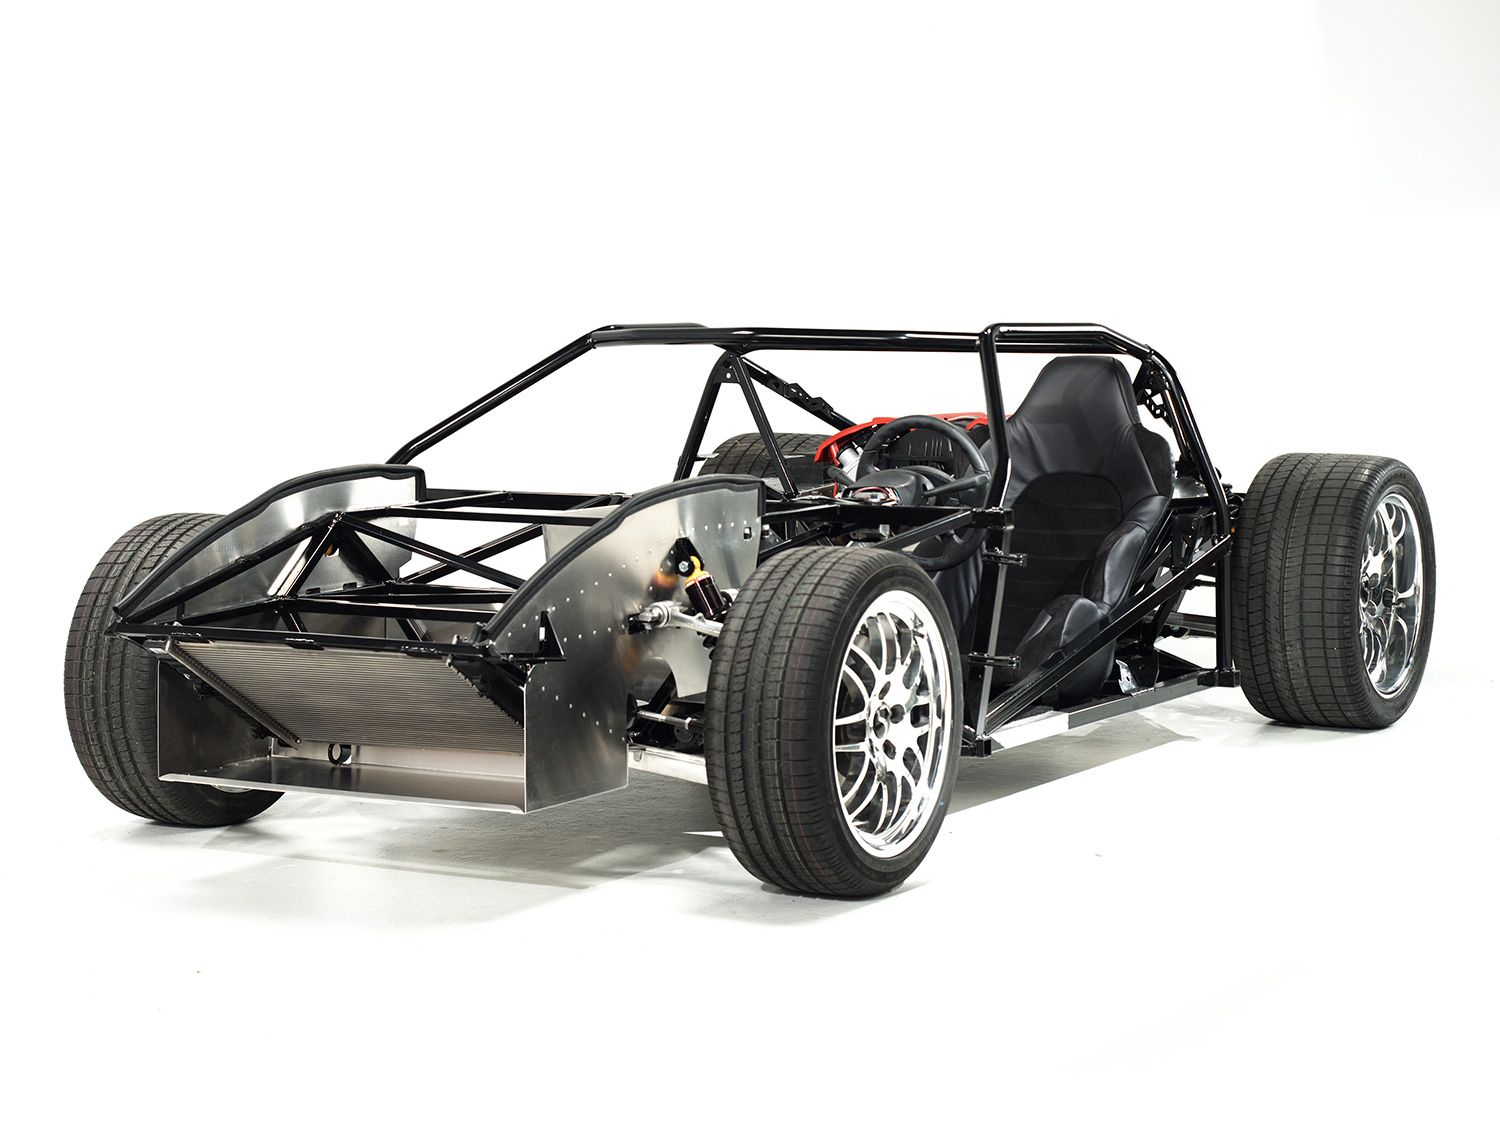 GTM Rolling Chassis - Factory Five Racing | Chassis | Pinterest